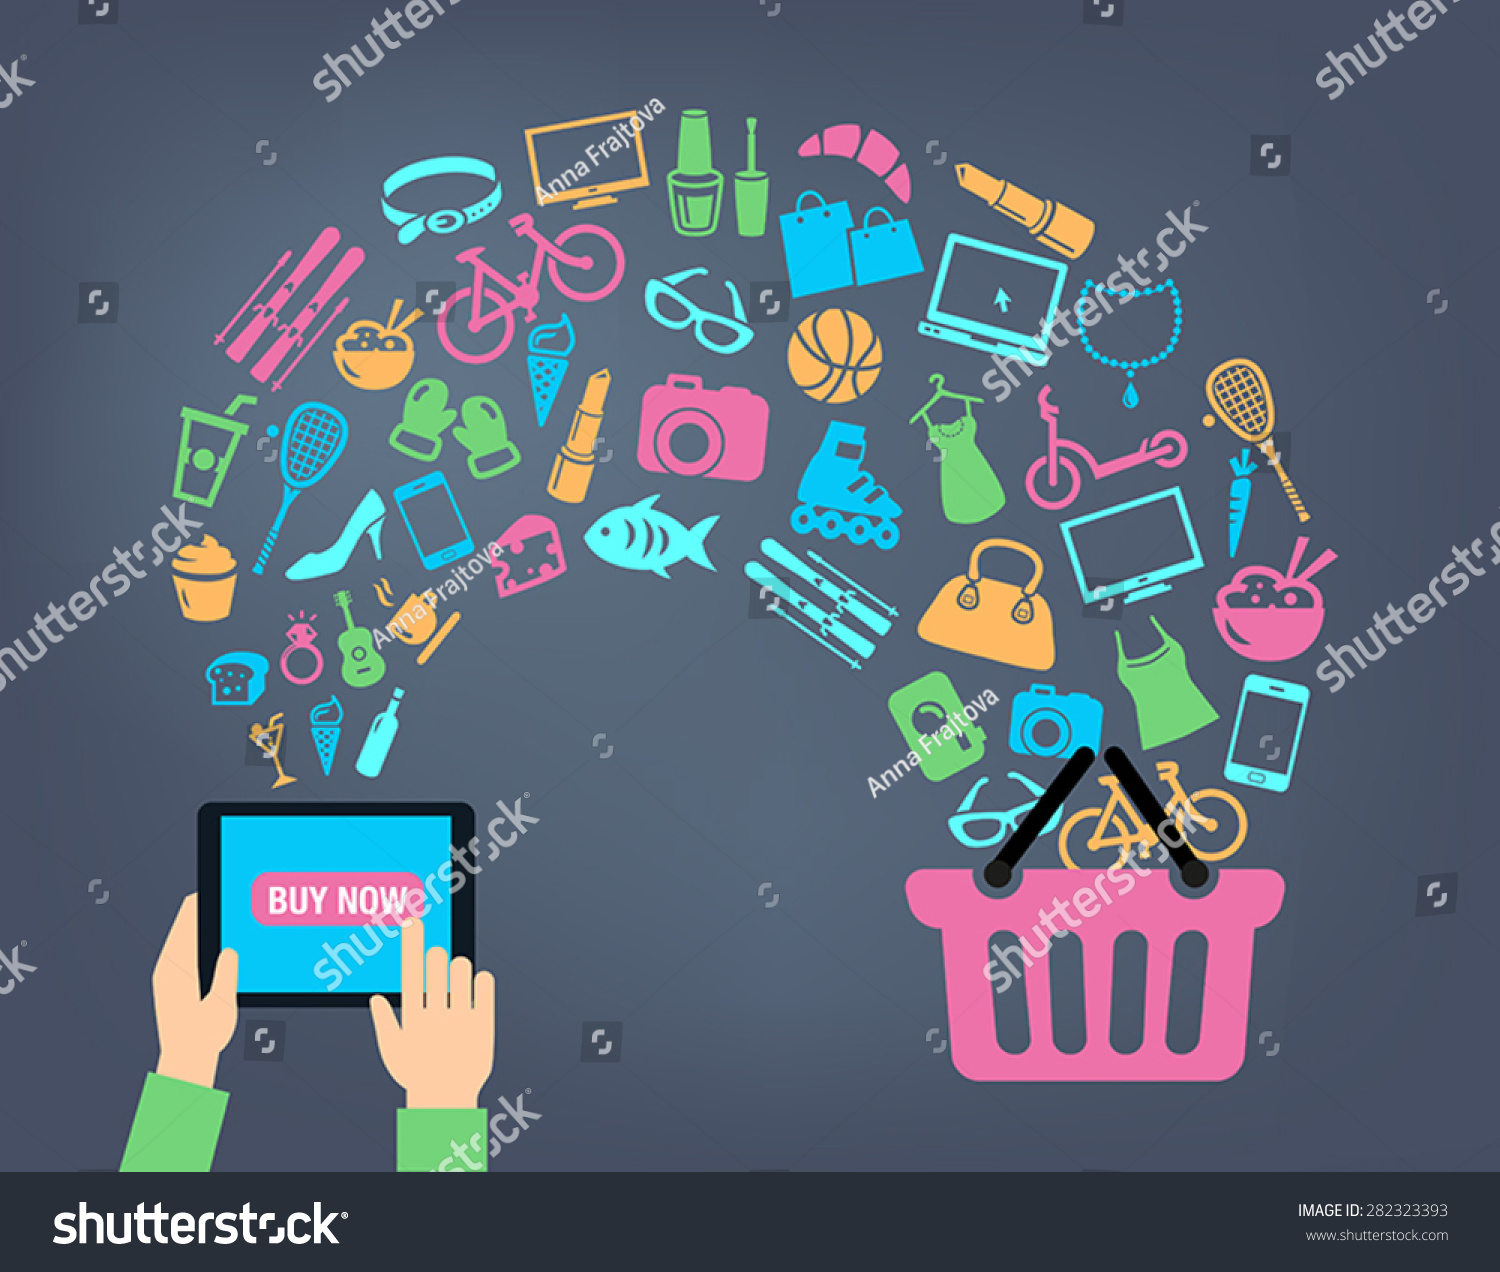 stock-vector-shopping-background-concept-with-icons-shopping-online-using-a-pc-tablet-or-a-smartphone-can-be-282323393.jpg